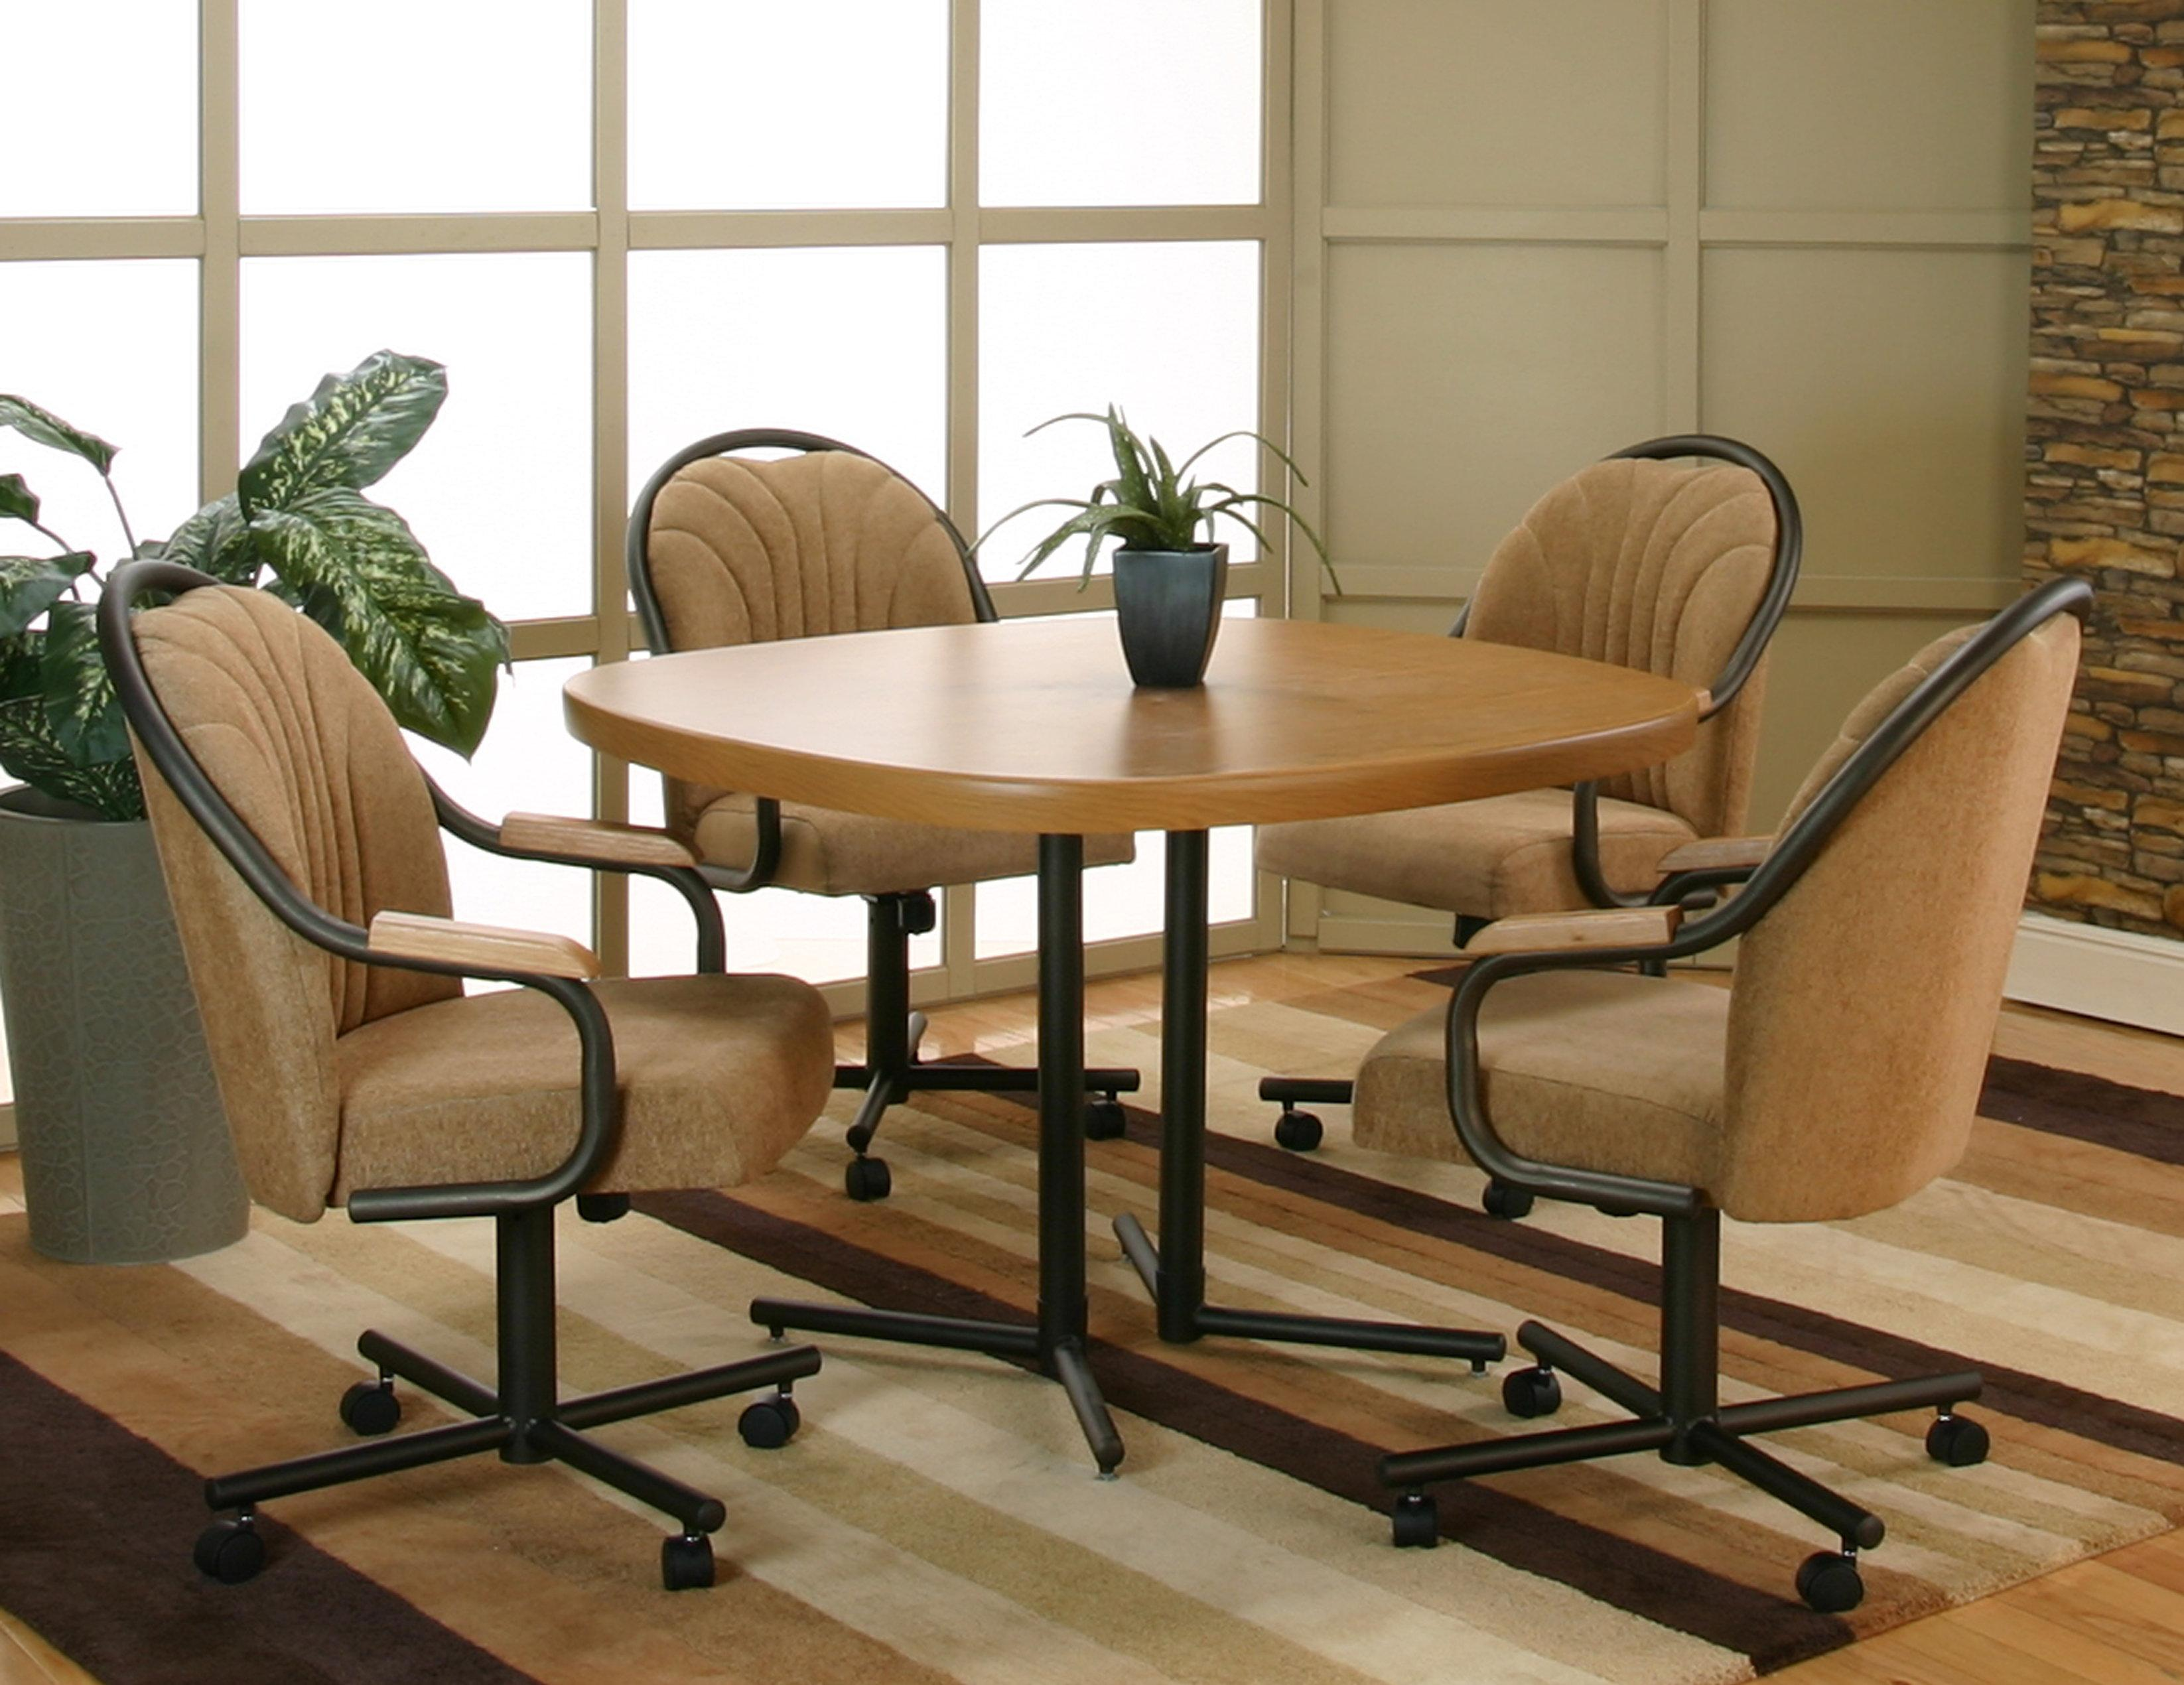 Kitchen sets with swivel chairs - Cramco Inc Shaw Espresso Harvest Chenille Upholstered Dining Arm Chair With Tilt Swivel Base Wayside Furniture Dining Chair With Casters